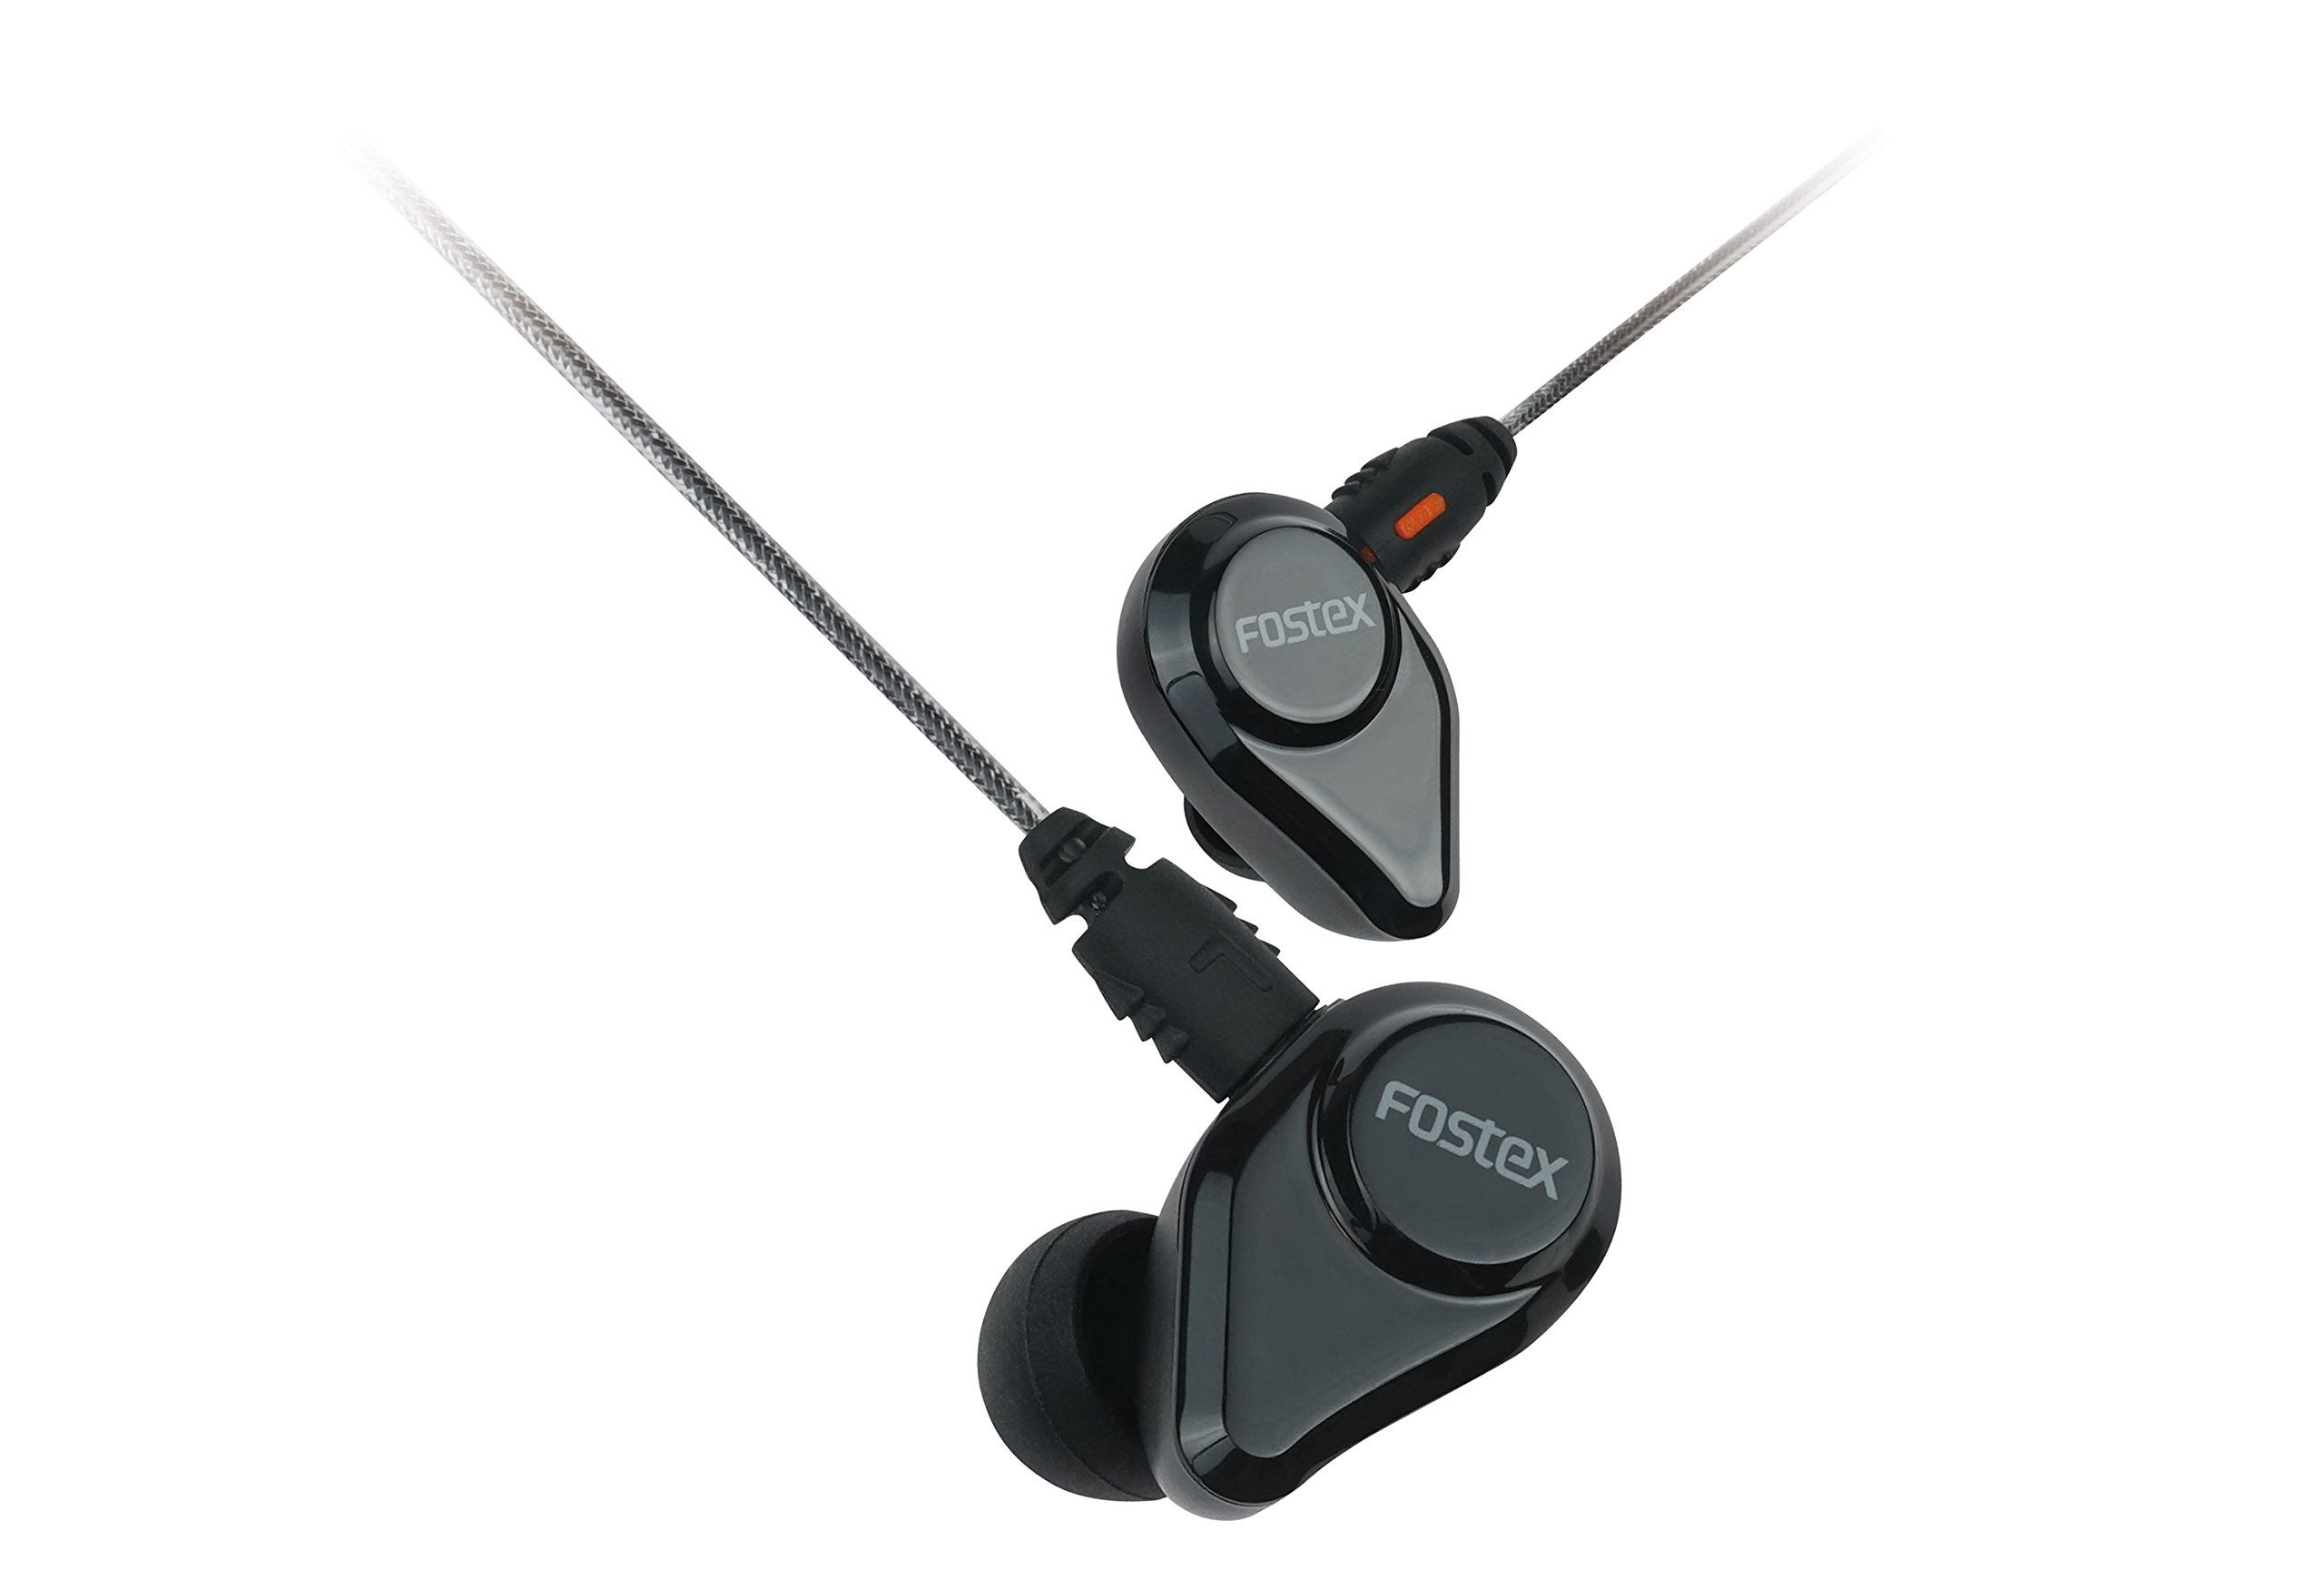 Fostex USA Fostex TE04 In-Ear Stereo Headphones with Detachable Cable and Microphone, Jet Black (TE-04BK), AMS-TE-04BK)